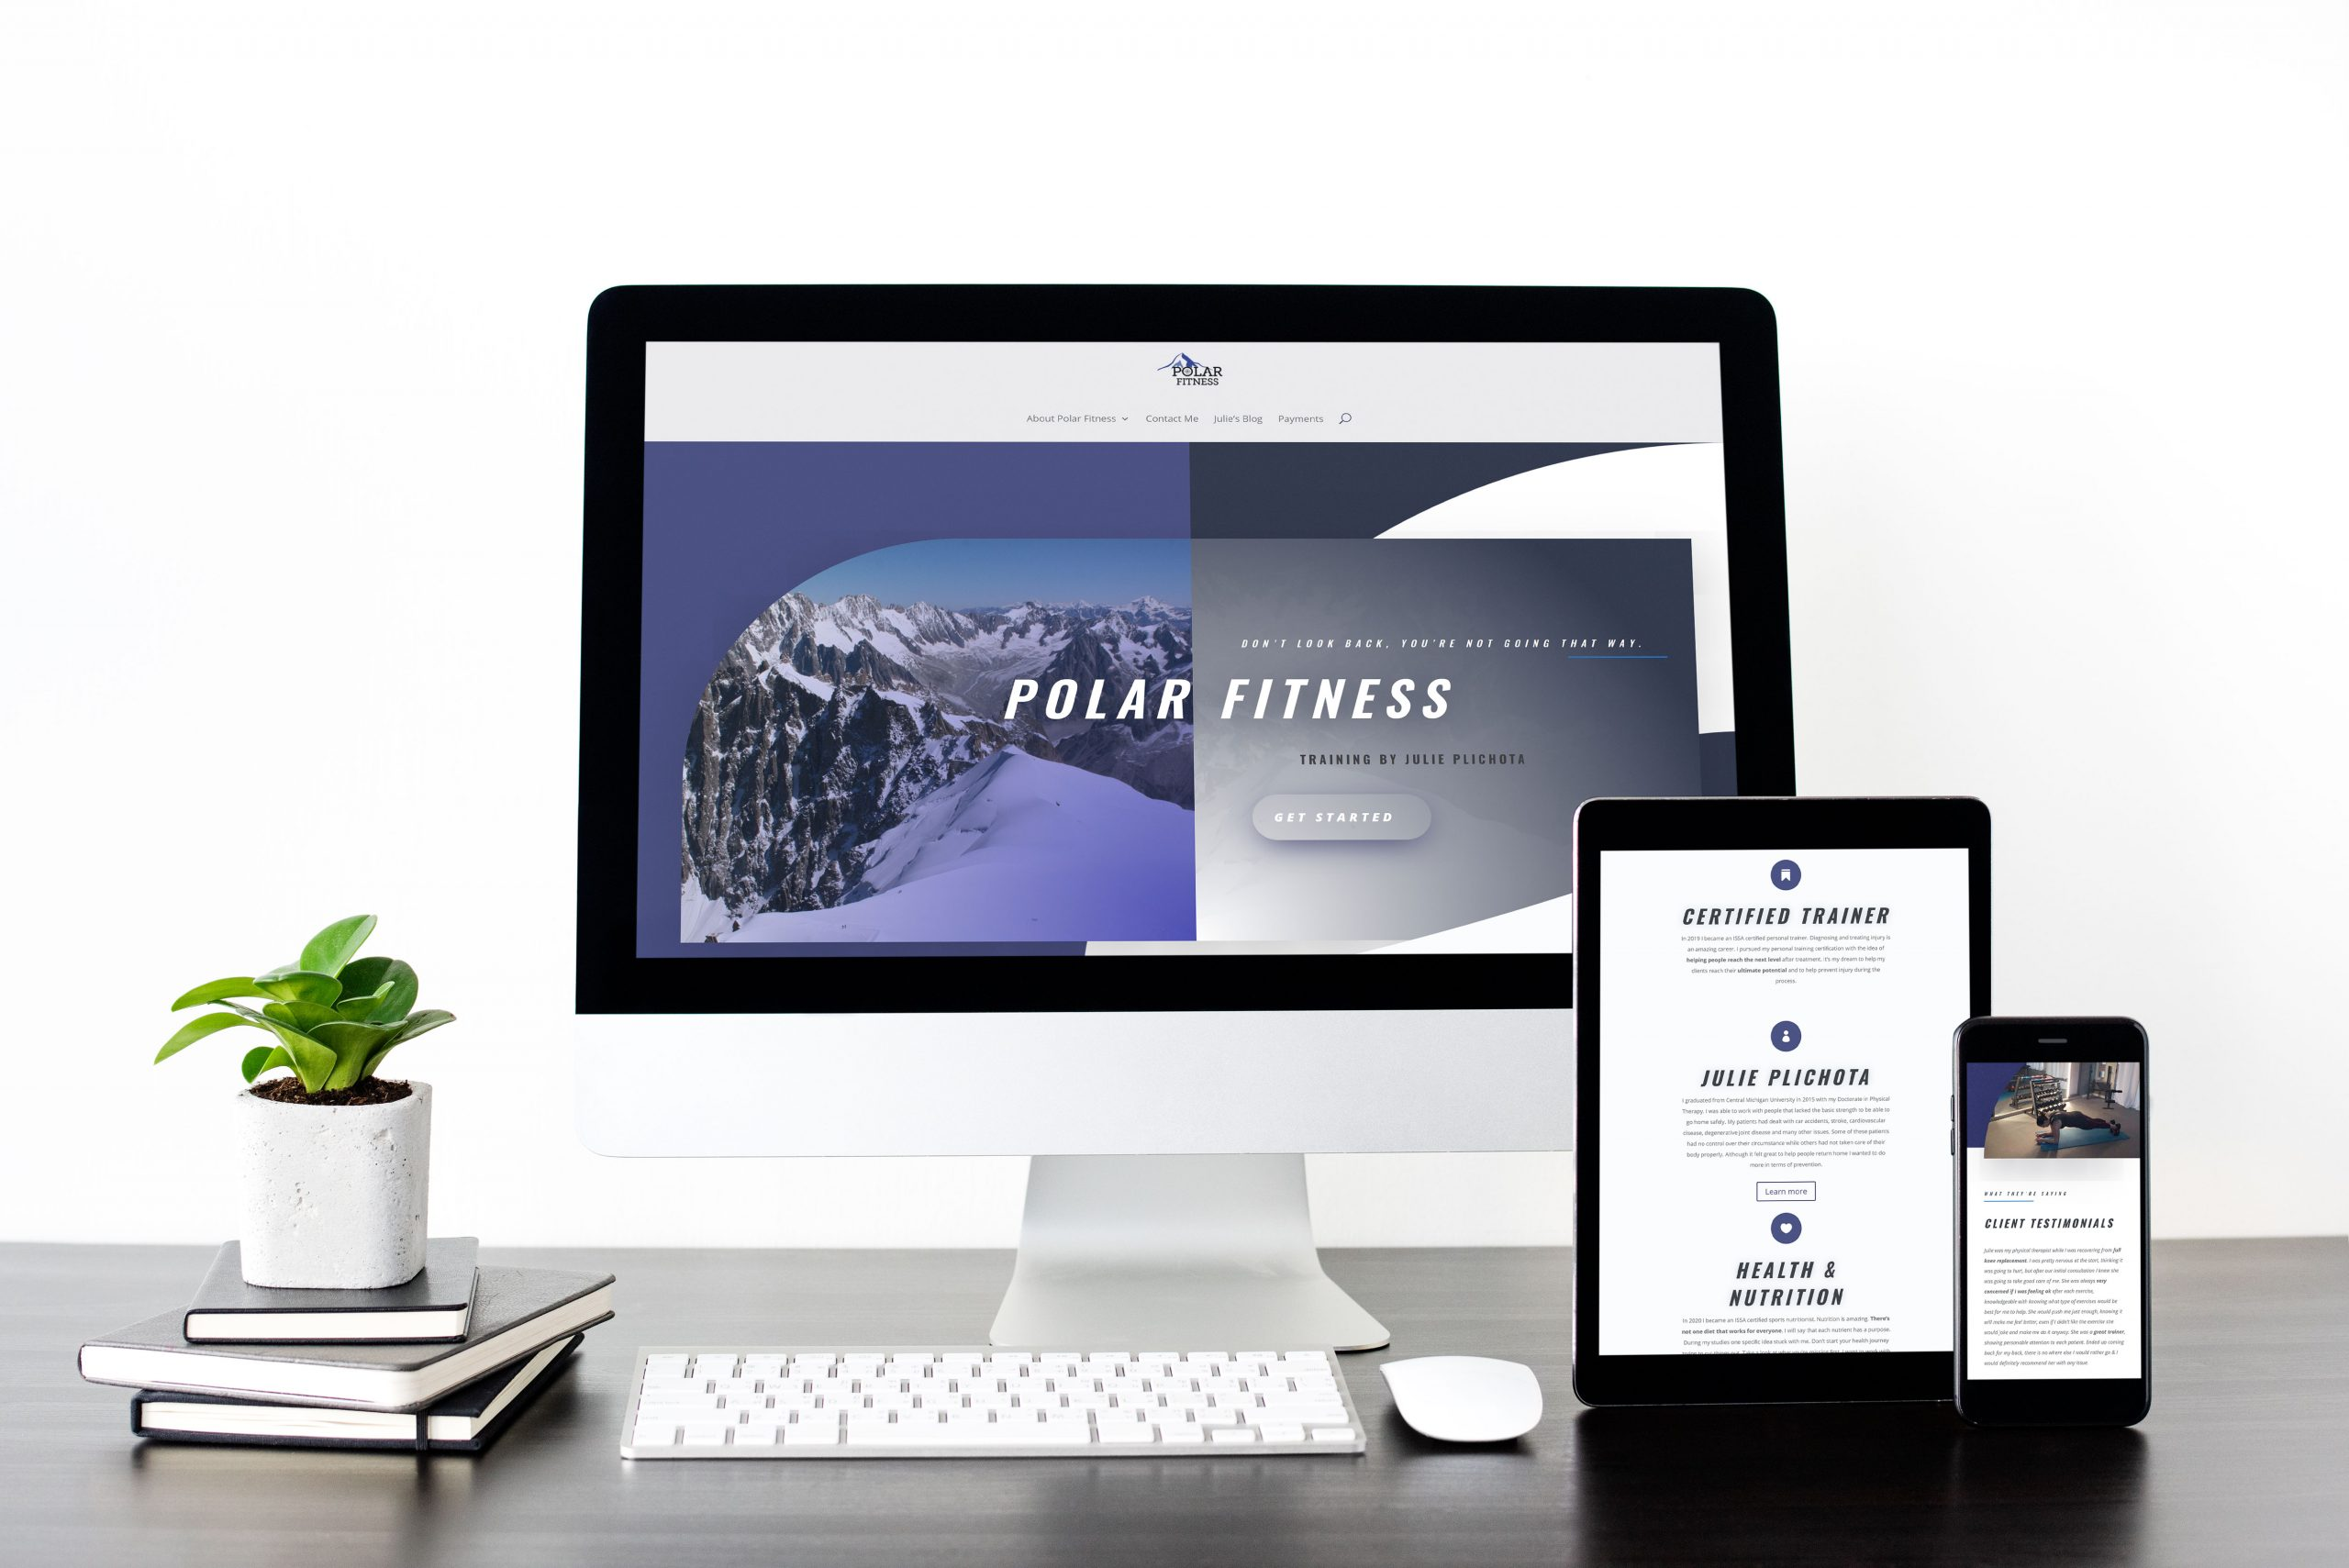 Polar Physical Therapy and Fitness - 2020 Website Mockup 02